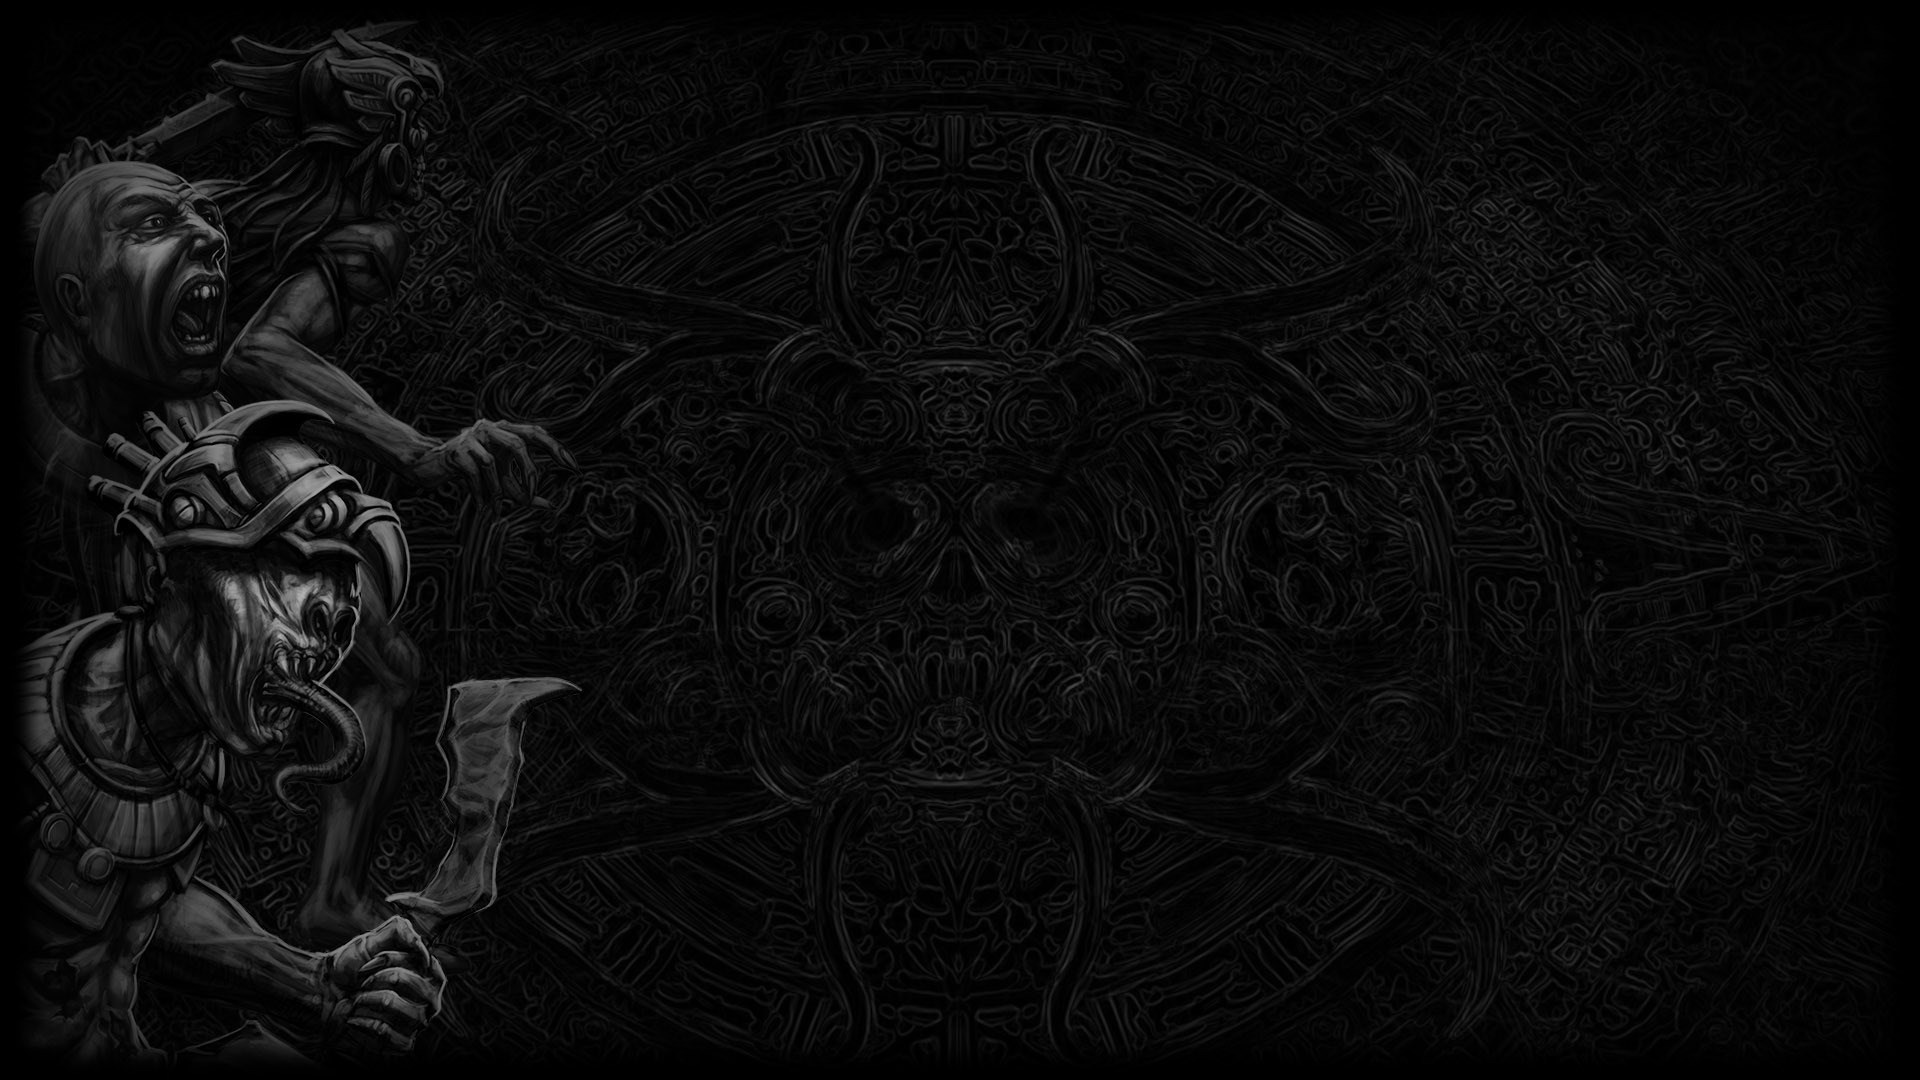 1920x1080-hd-chainsaw-warrior-lords-of-the-night-wallpaper-wpc580816